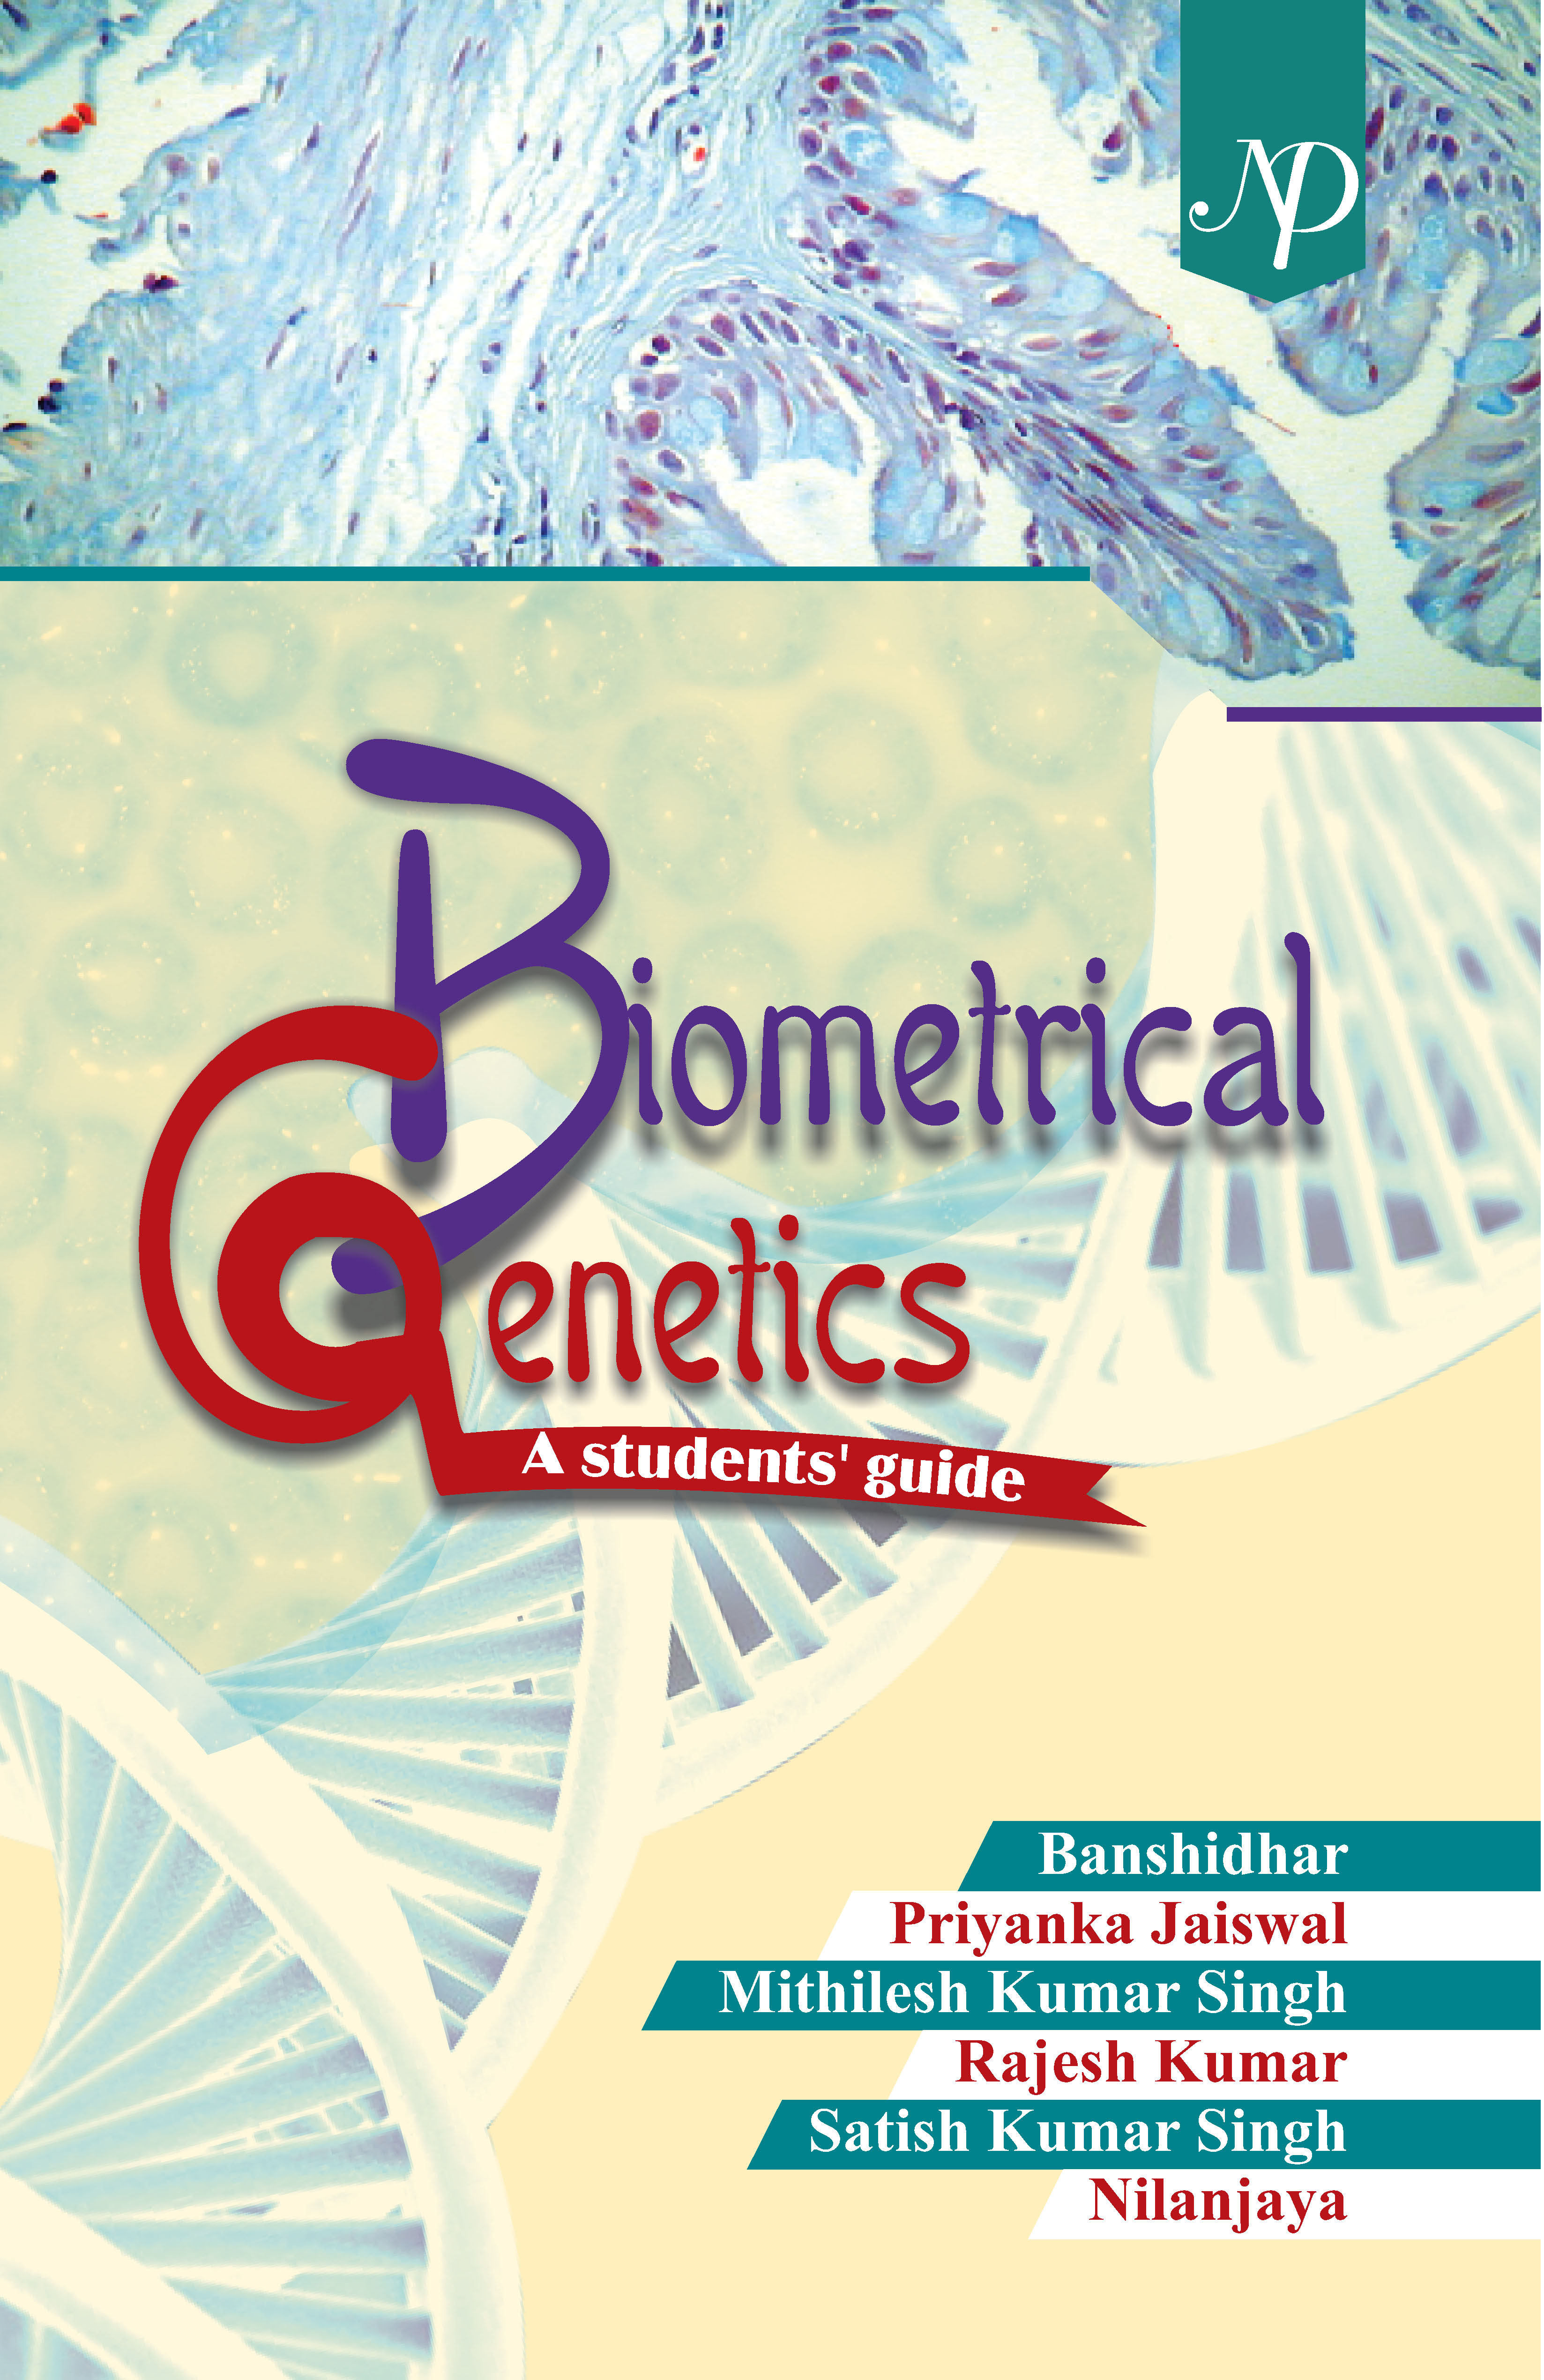 Biometrical Genetics - A Students' guide By Bansidhar.jpg